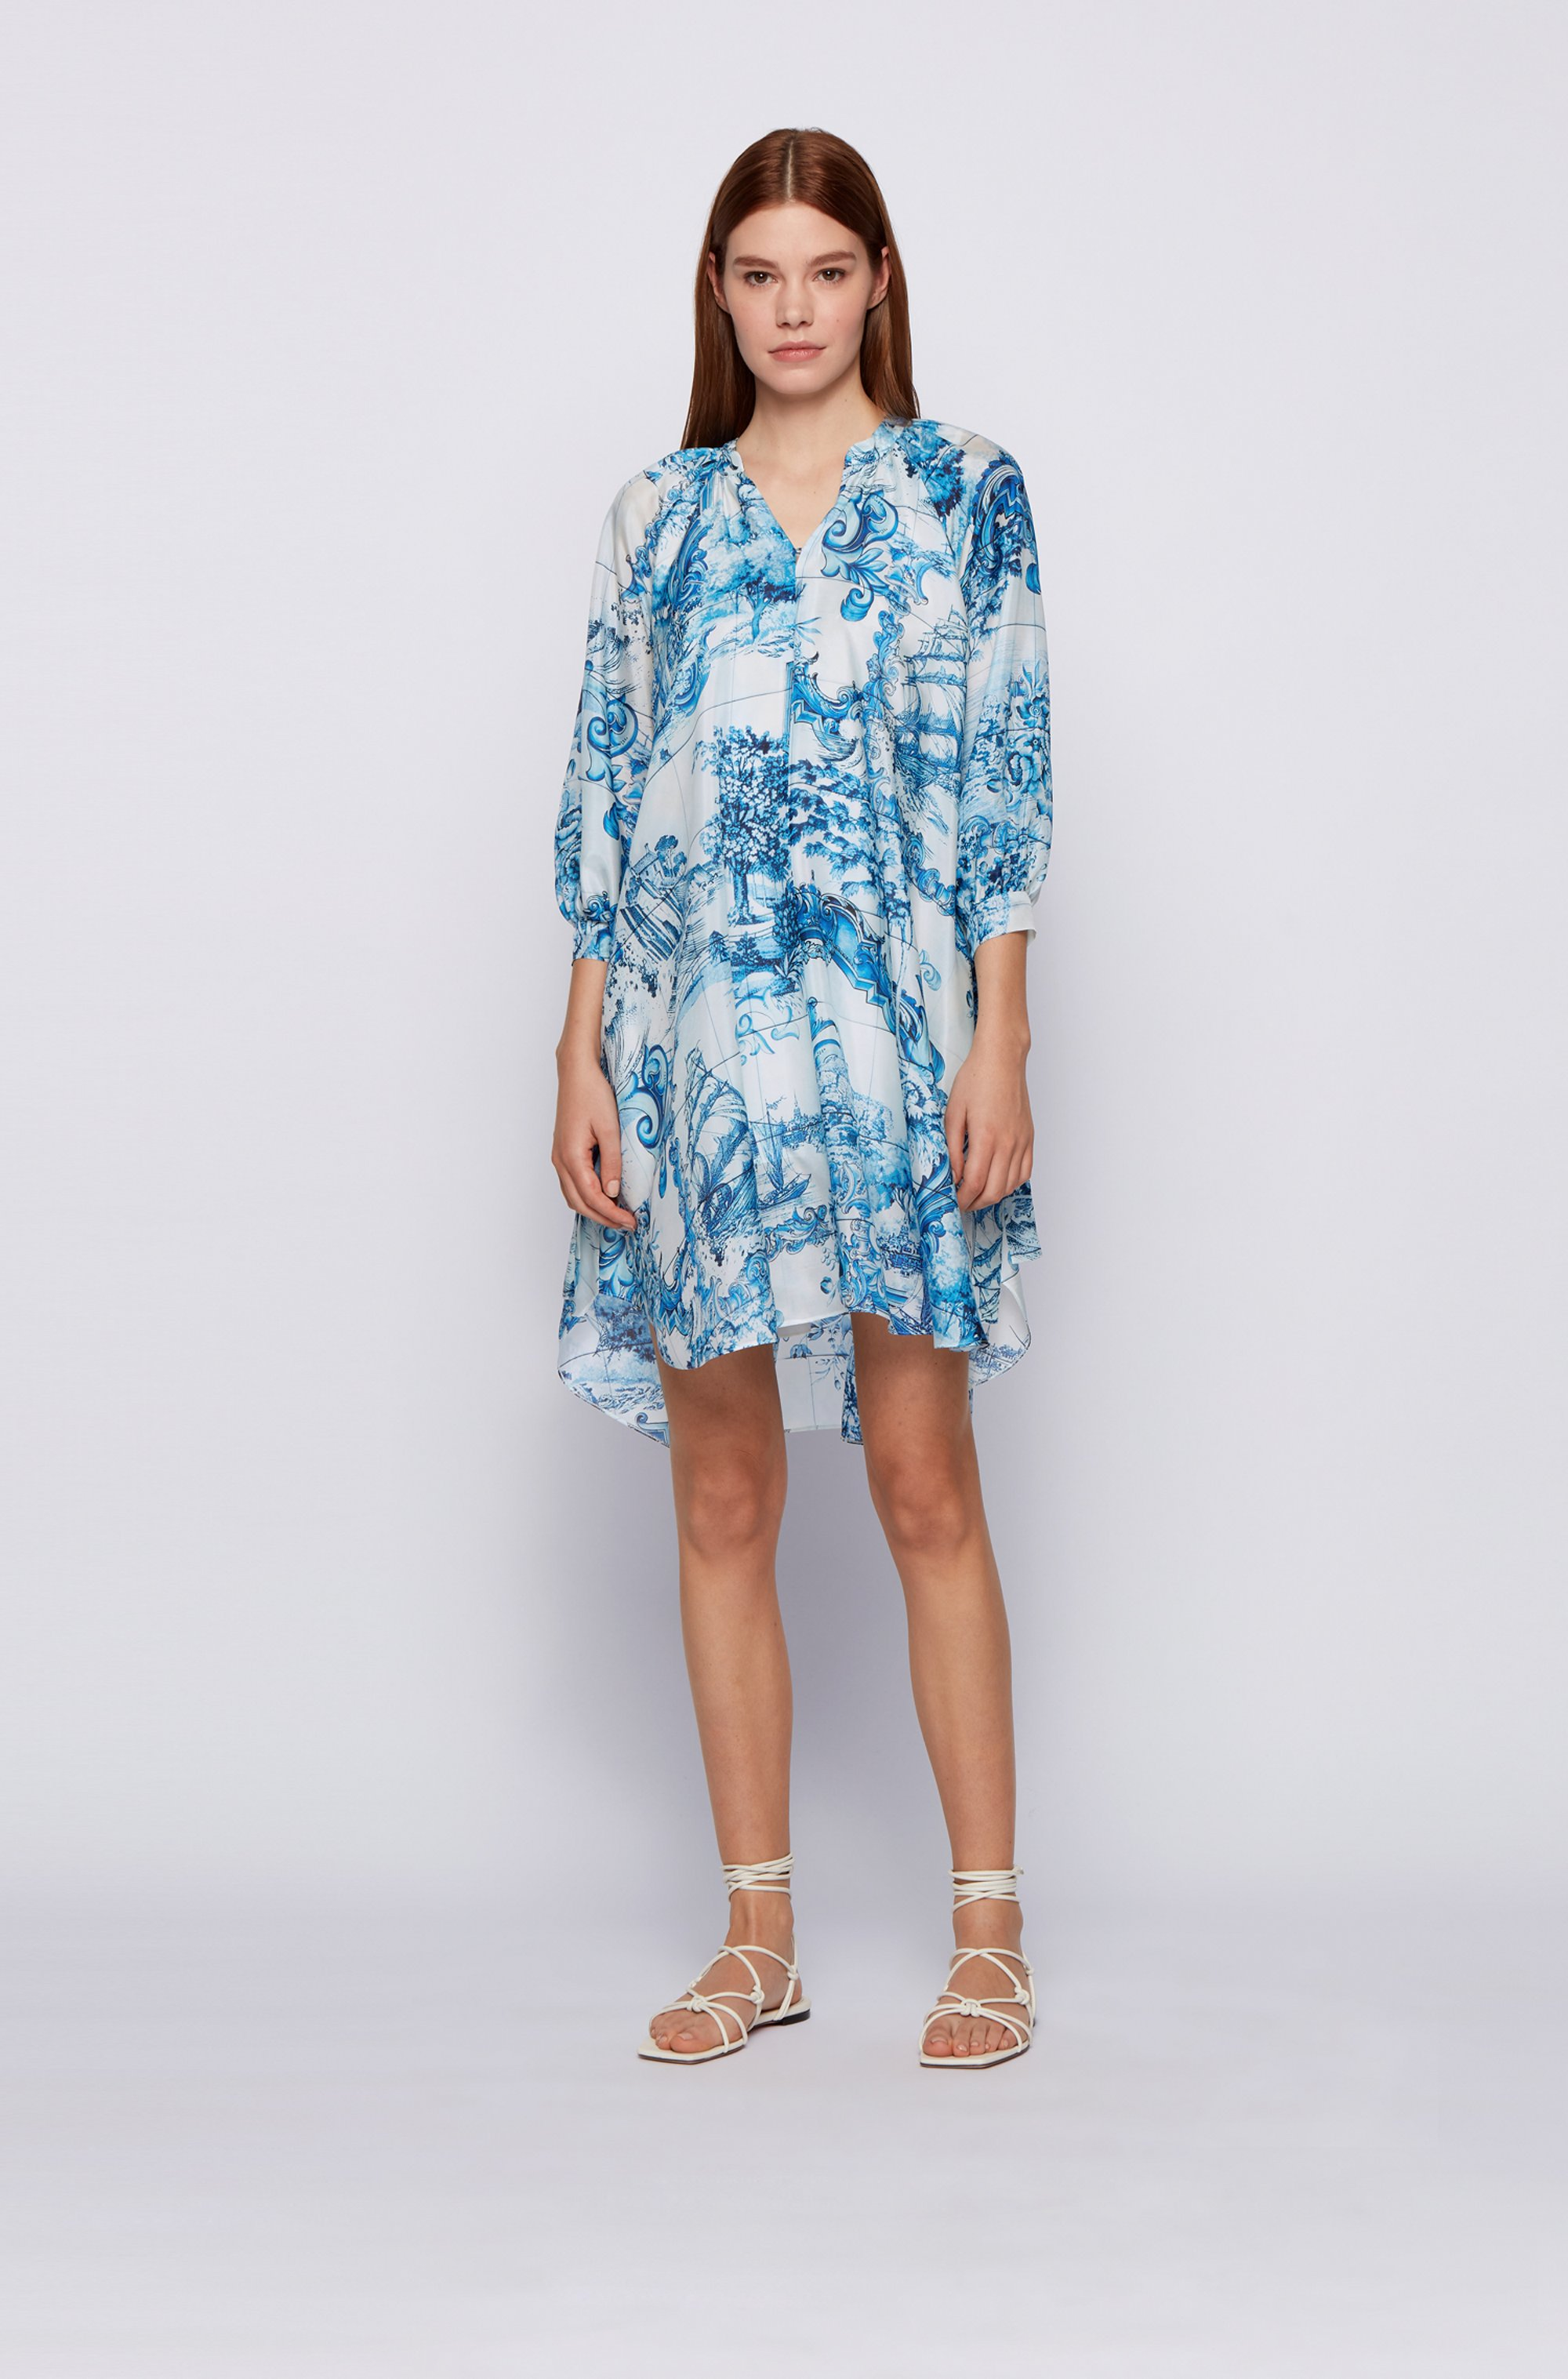 Silk swing dress in collection print with cuff ties